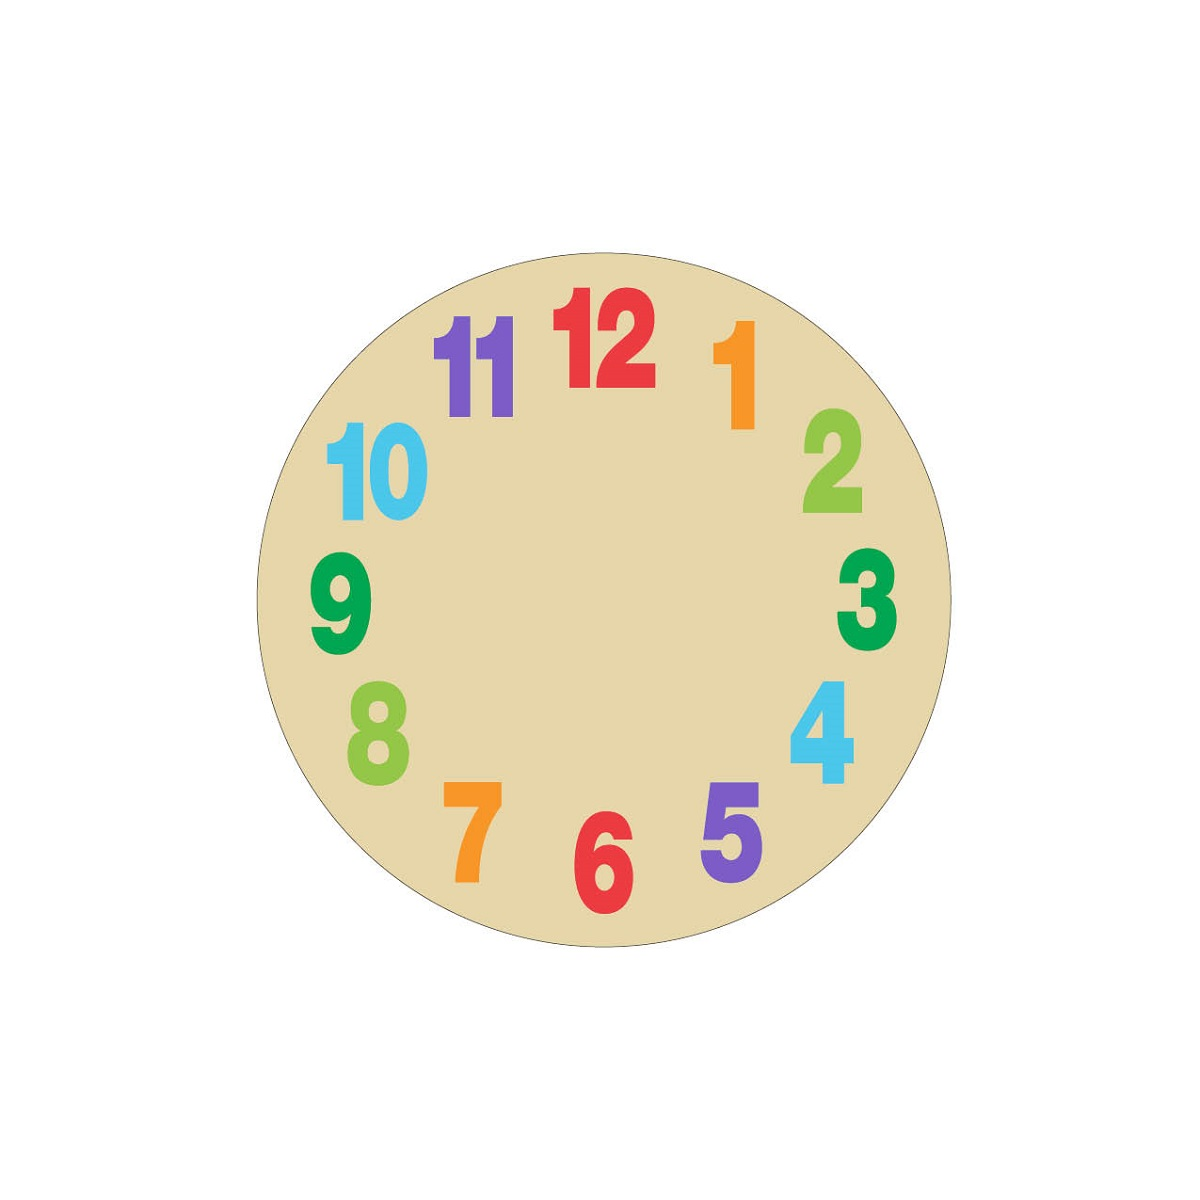 blank-clock-face-template-for-kids